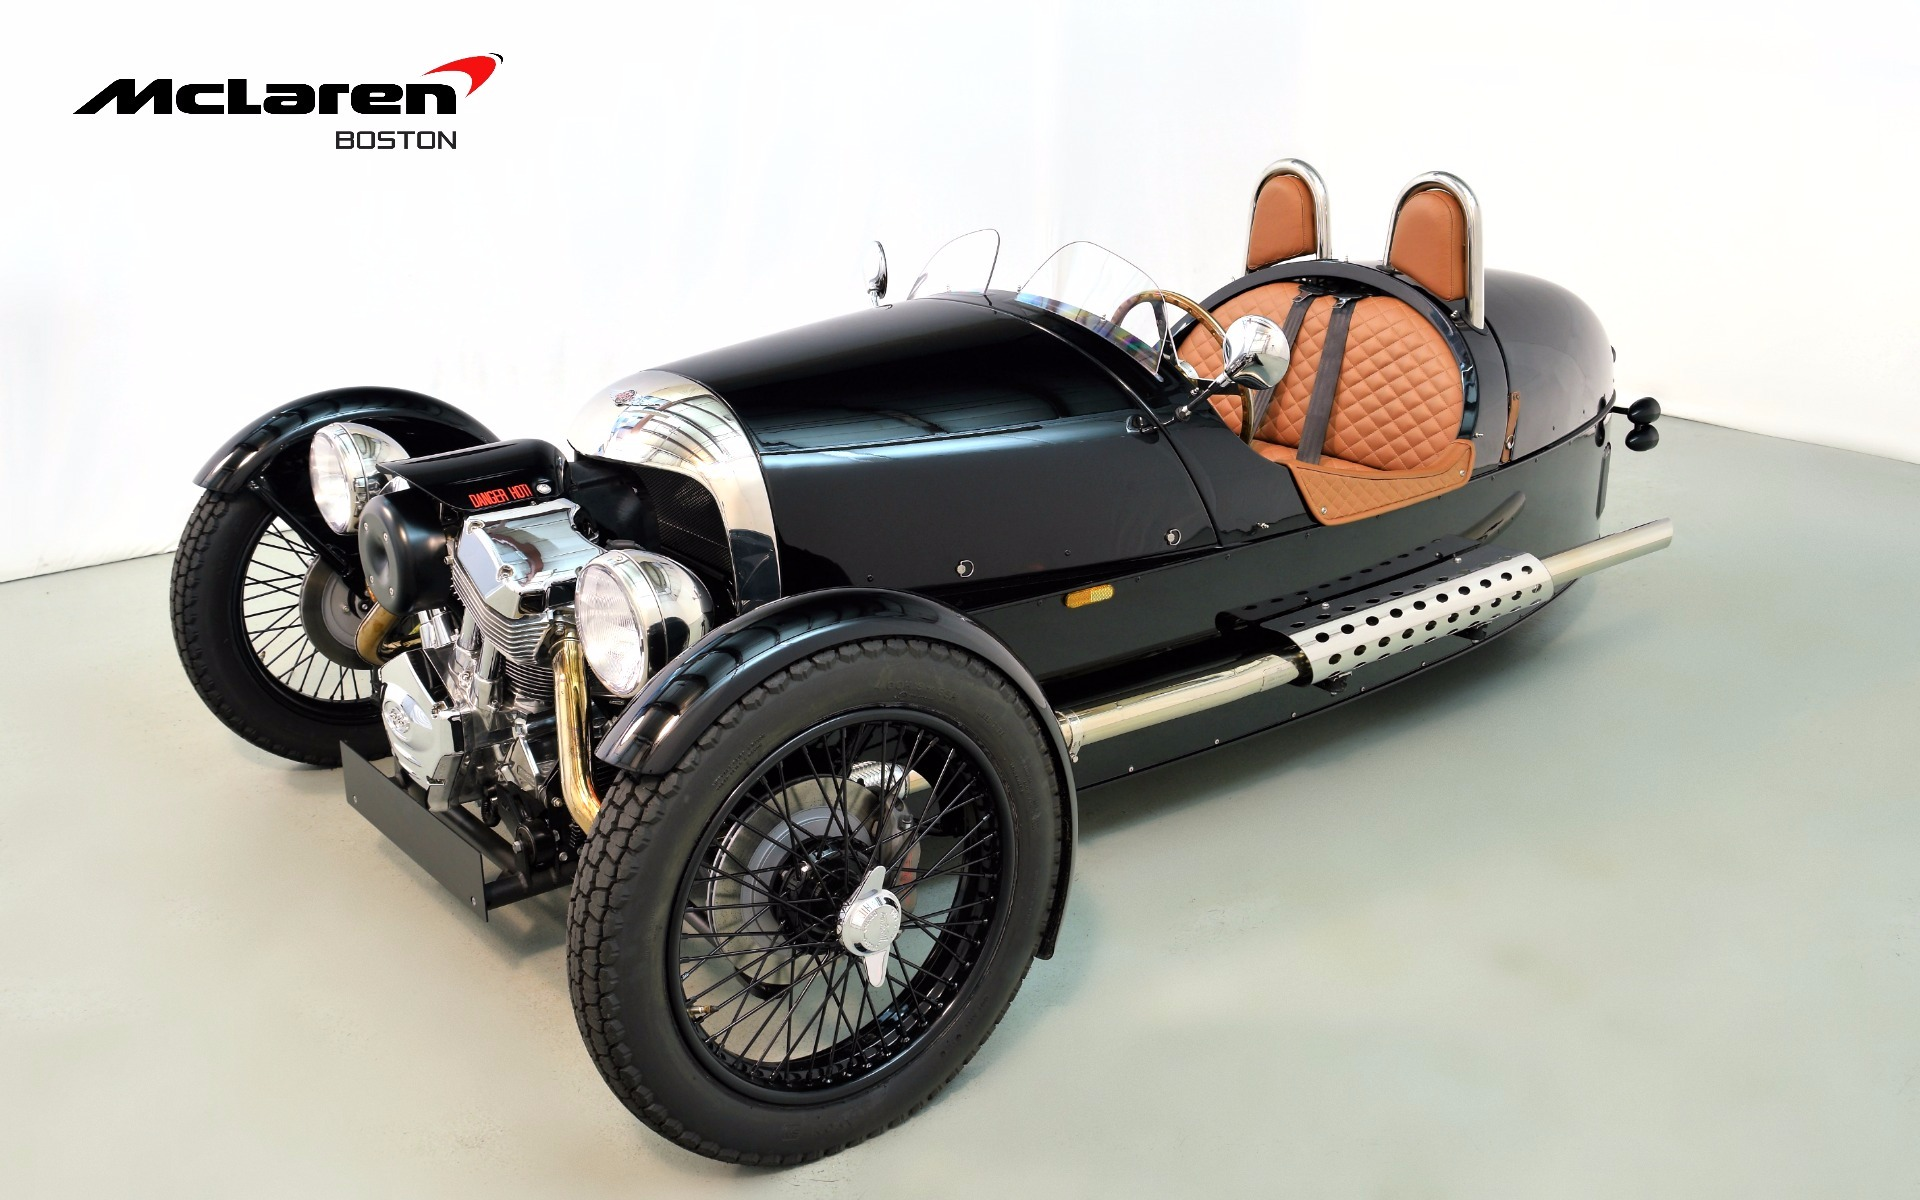 2015 morgan 3 wheeler for sale in norwell ma 202428 mclaren boston. Black Bedroom Furniture Sets. Home Design Ideas